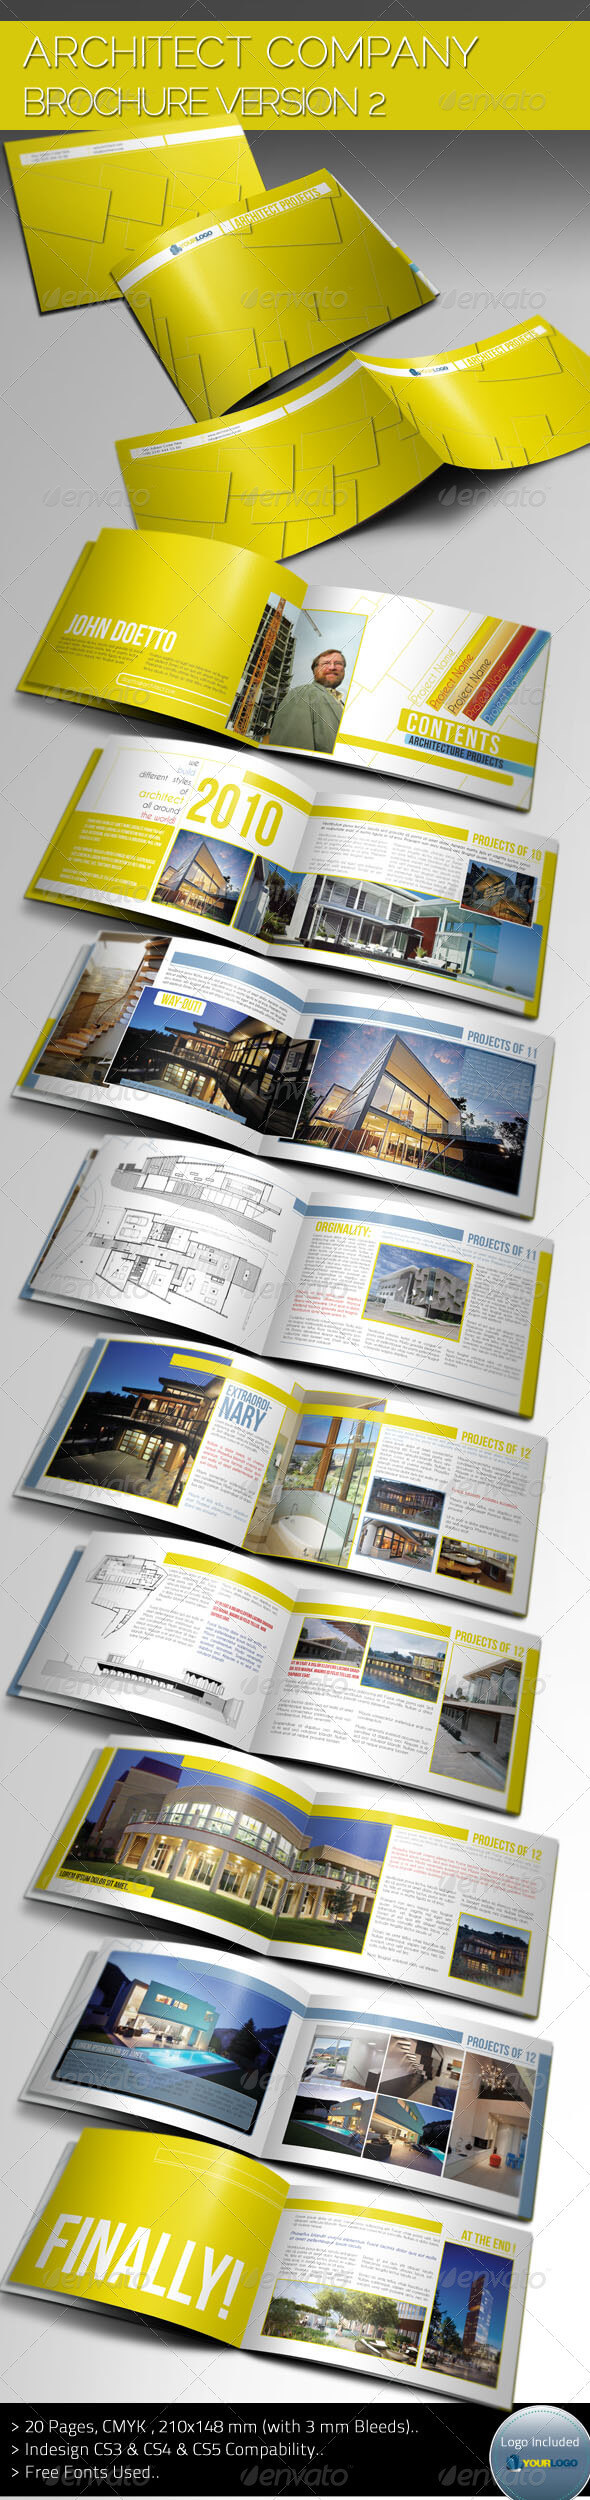 Indesign Brochure Template Graphics, Designs & Templates Pertaining To Architecture Brochure Templates Free Download